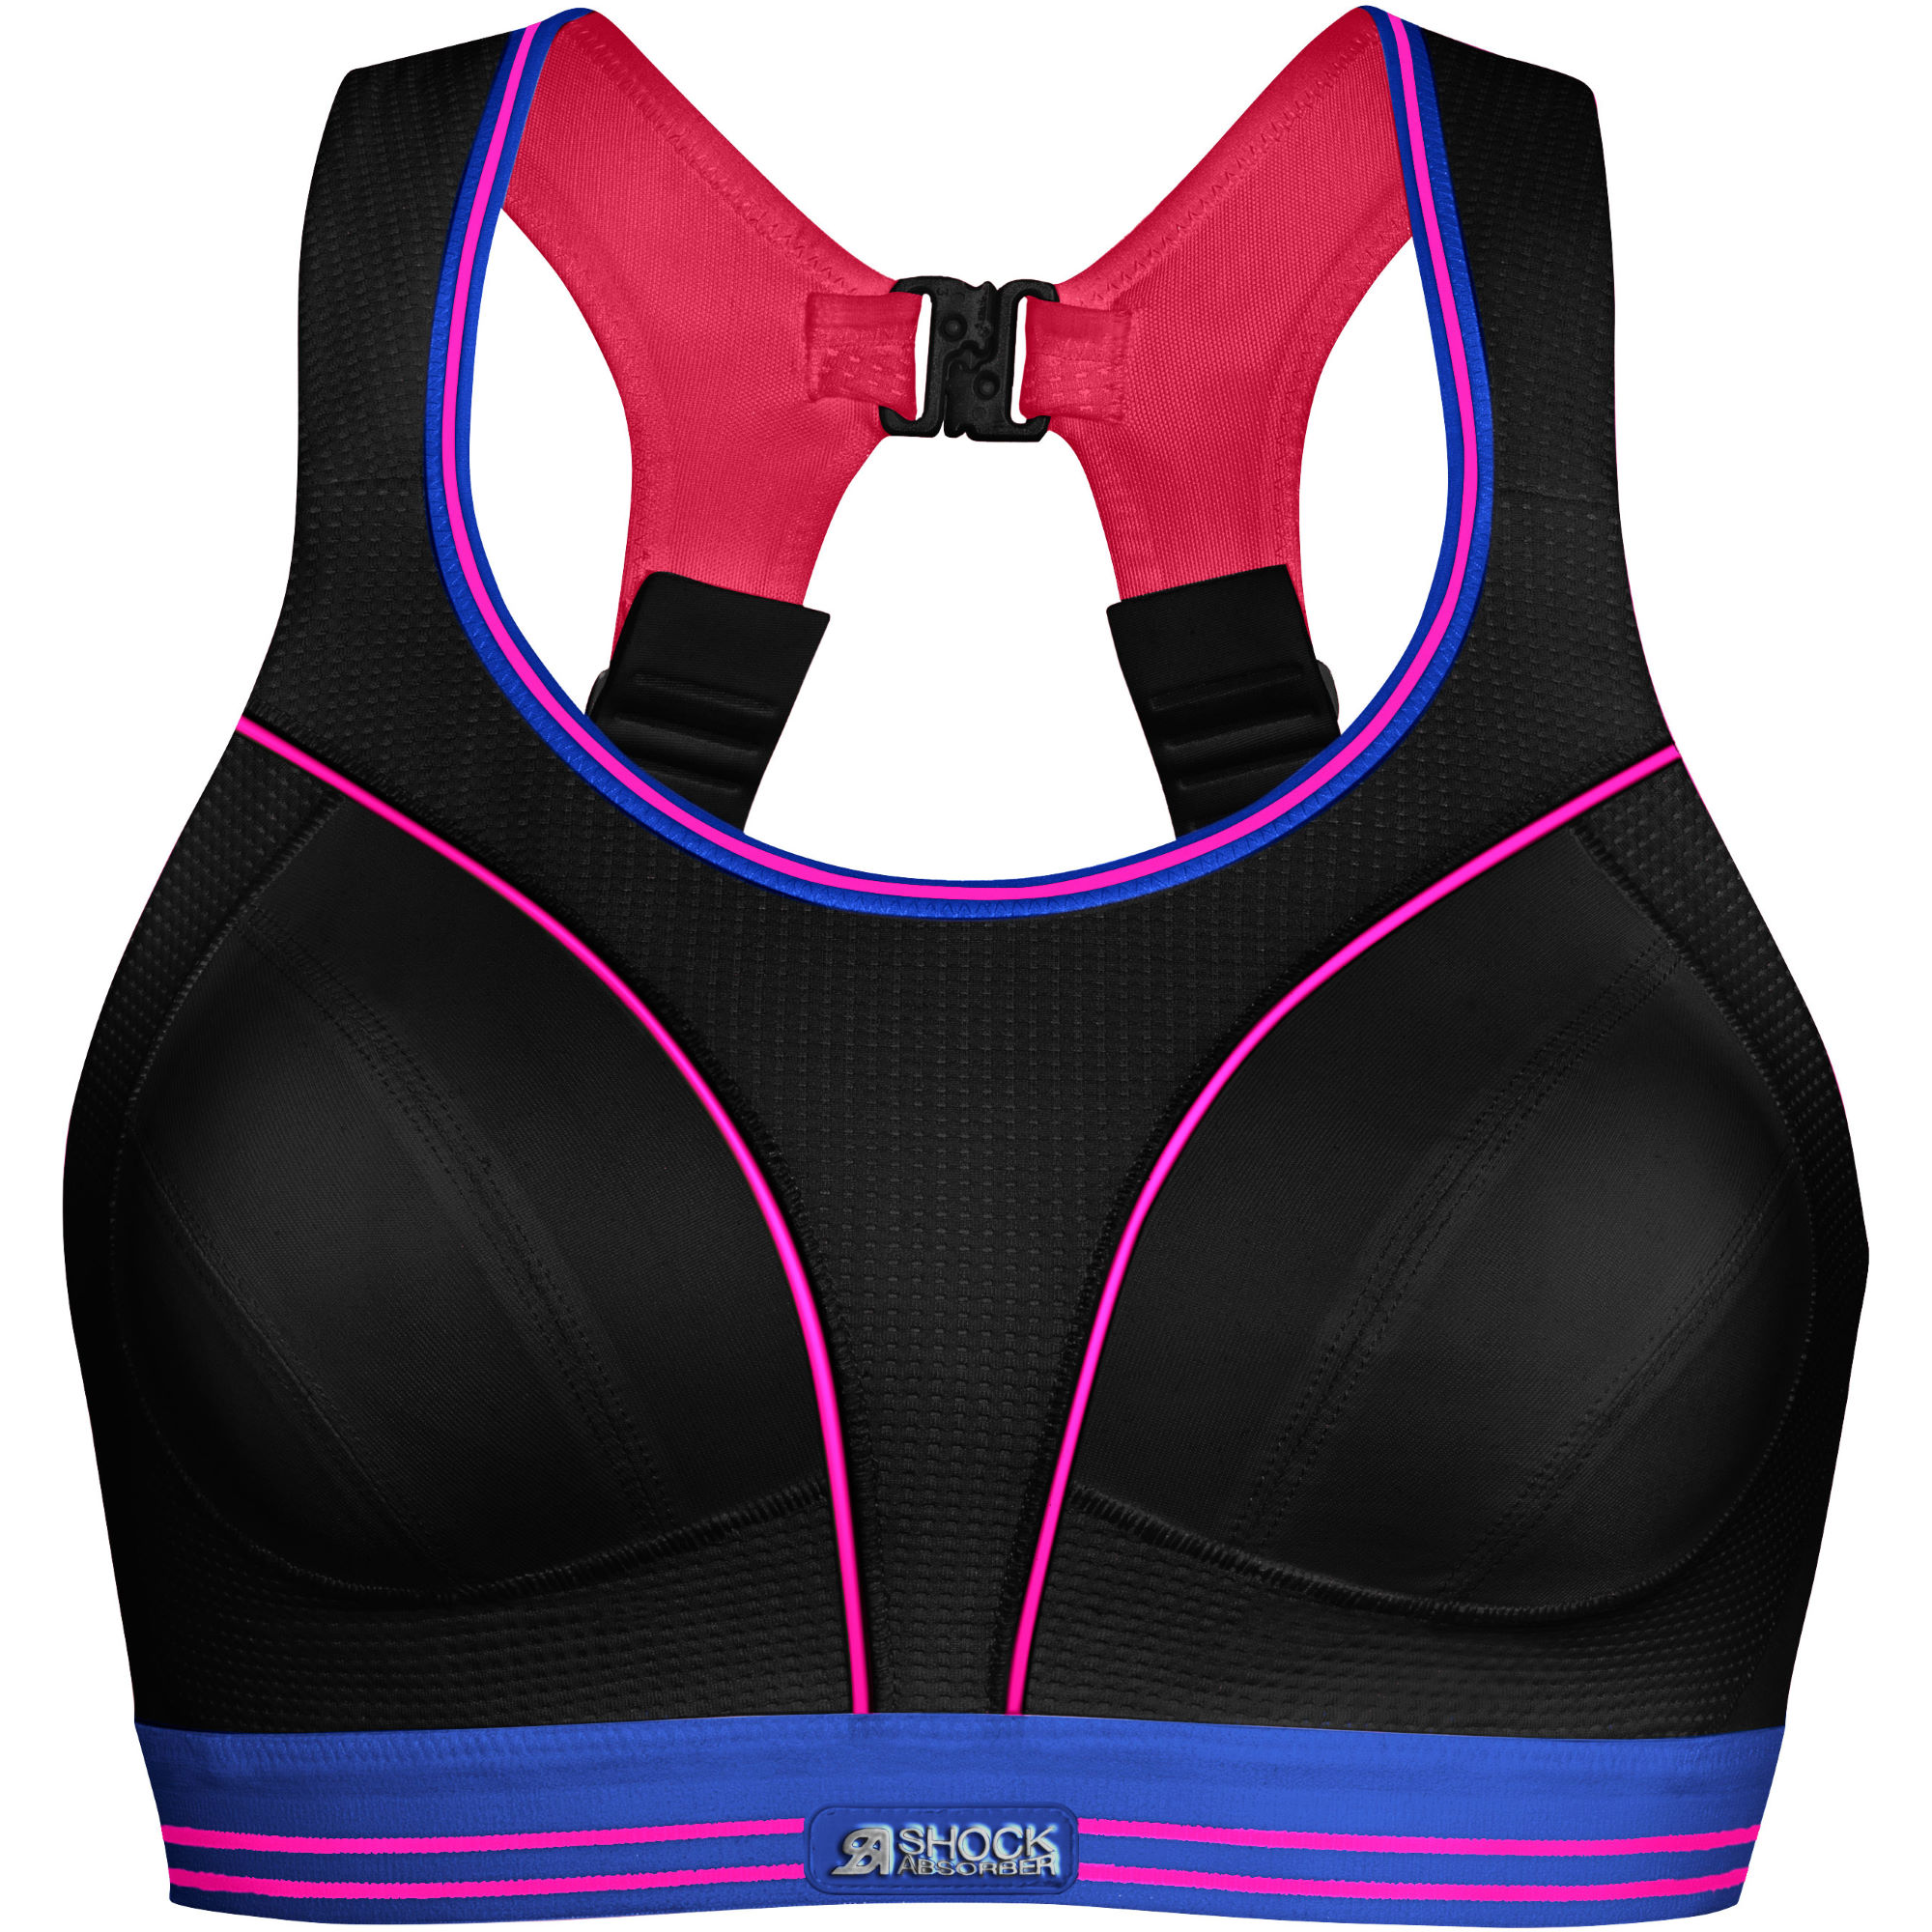 wiggle shock absorber ultimate run bra black pink. Black Bedroom Furniture Sets. Home Design Ideas